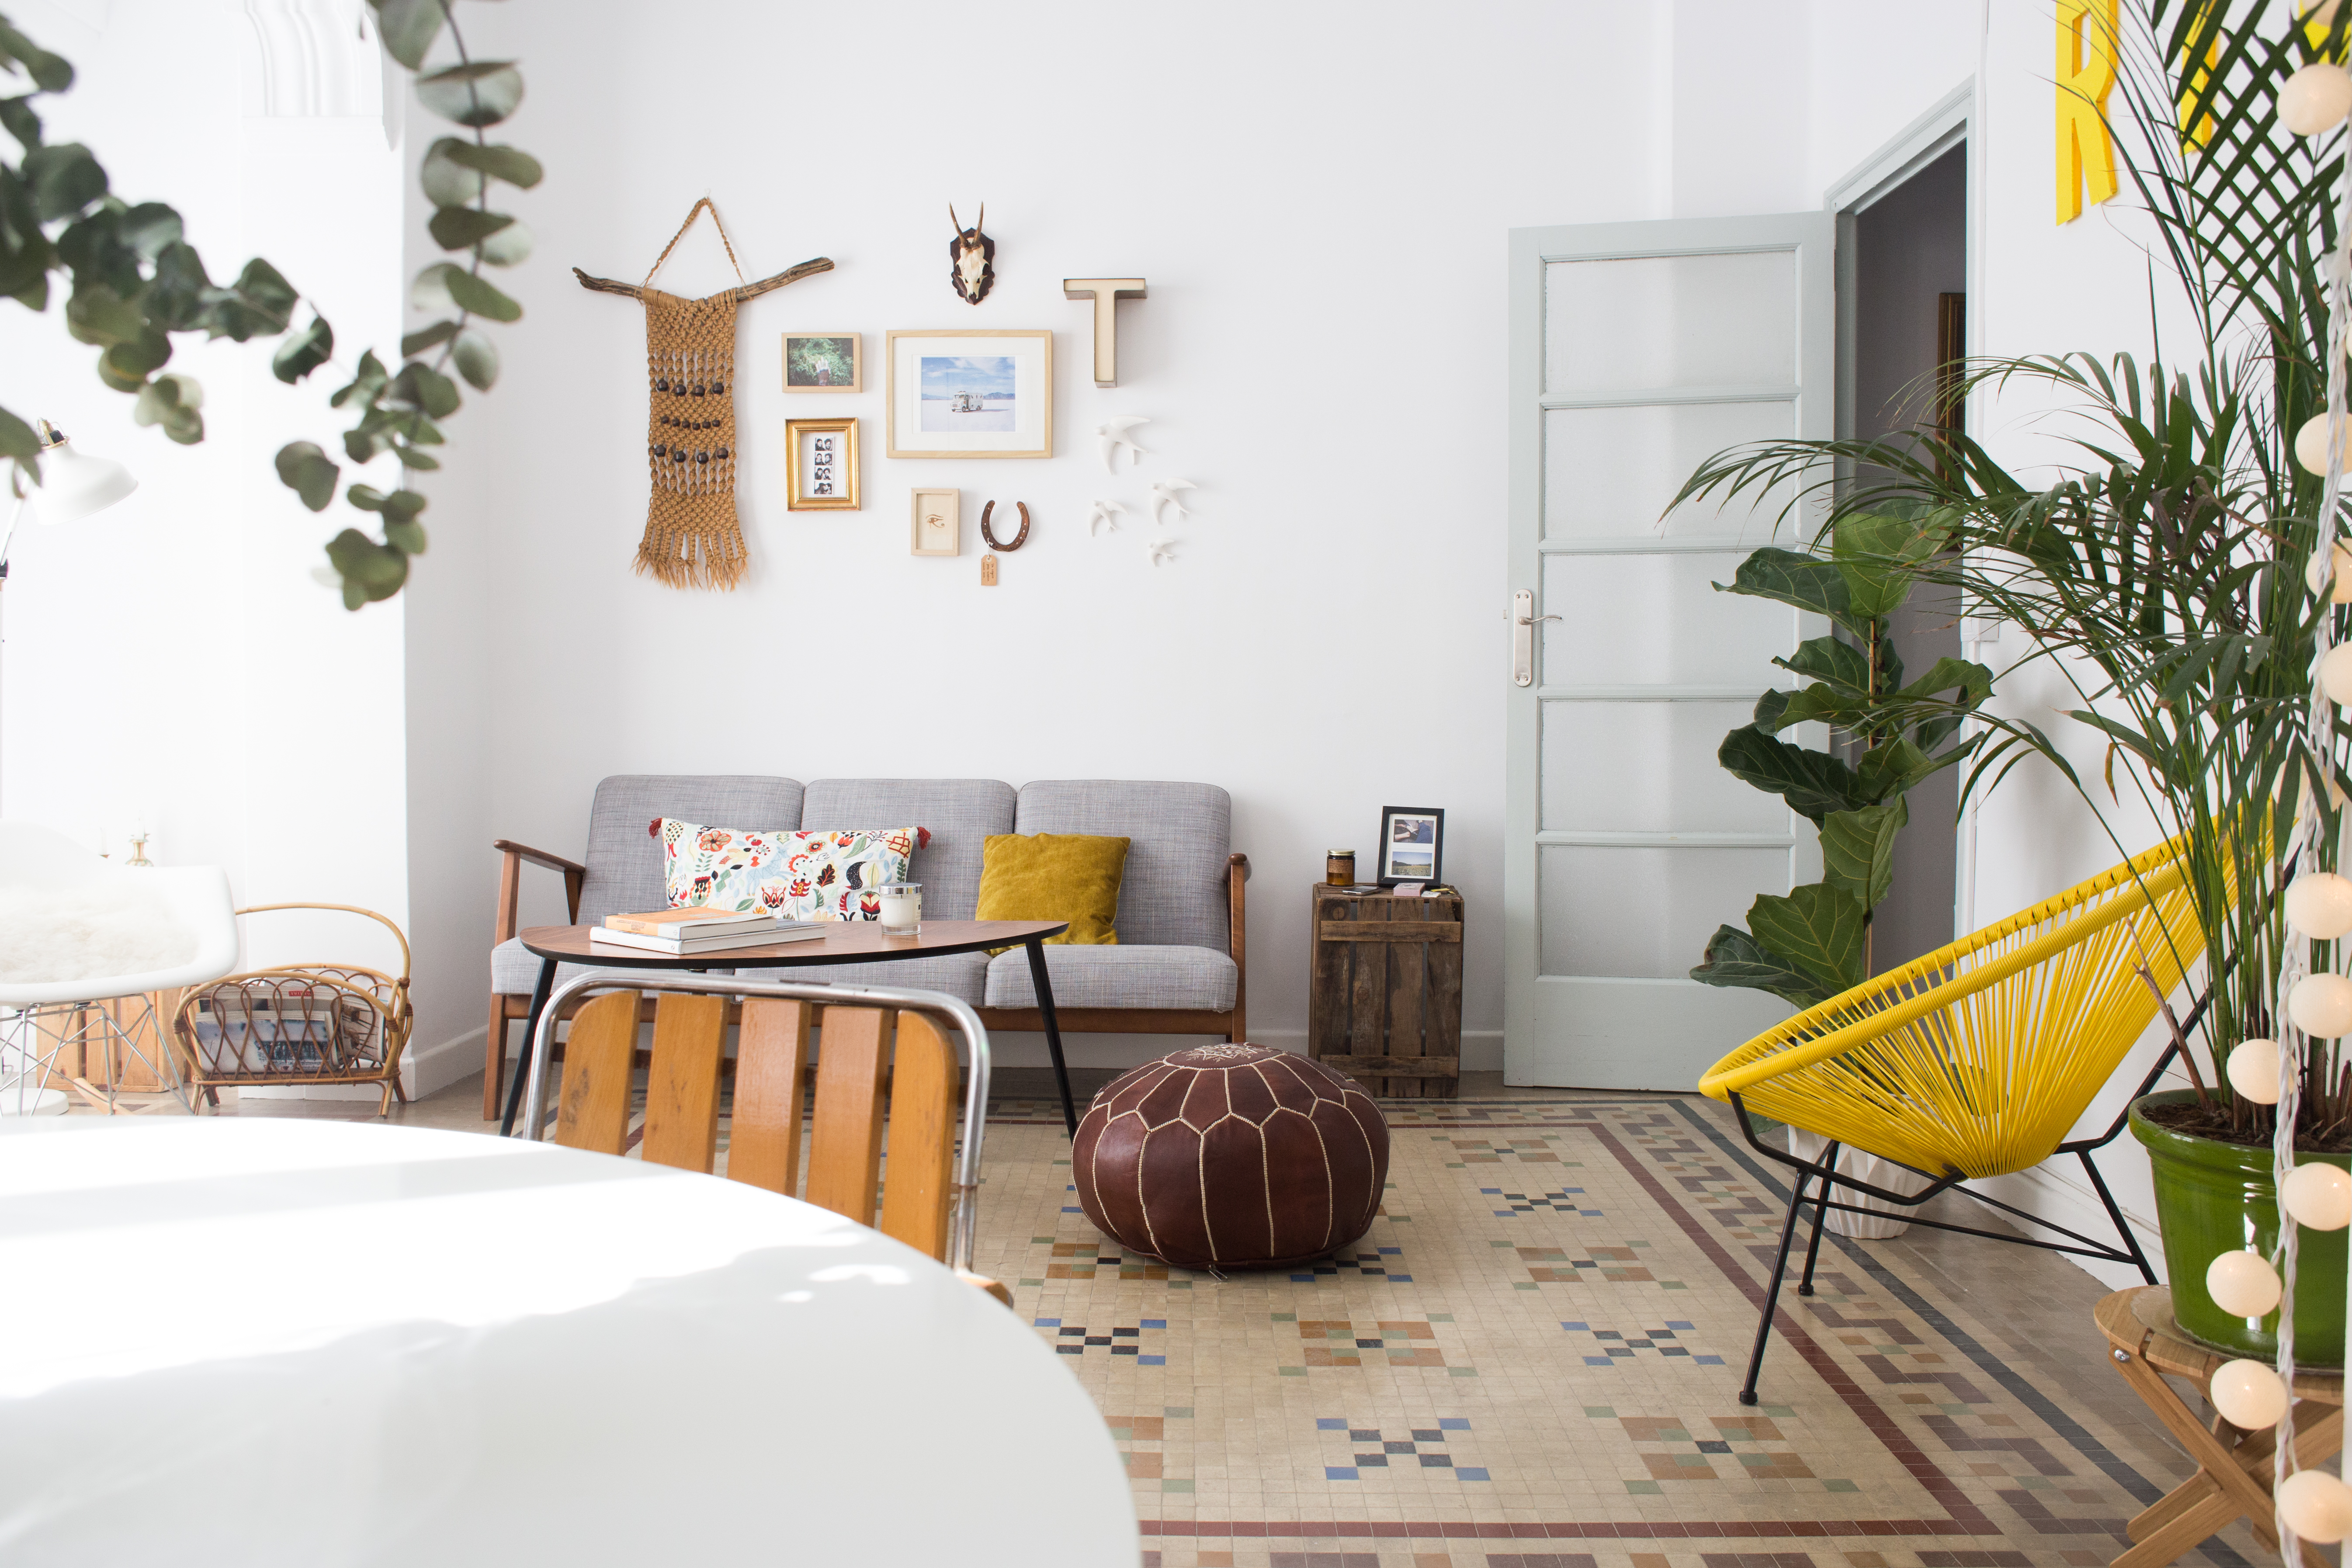 Forget Plain White Tiles, These 8 Rooms Will Make You Crave Bolder Floors